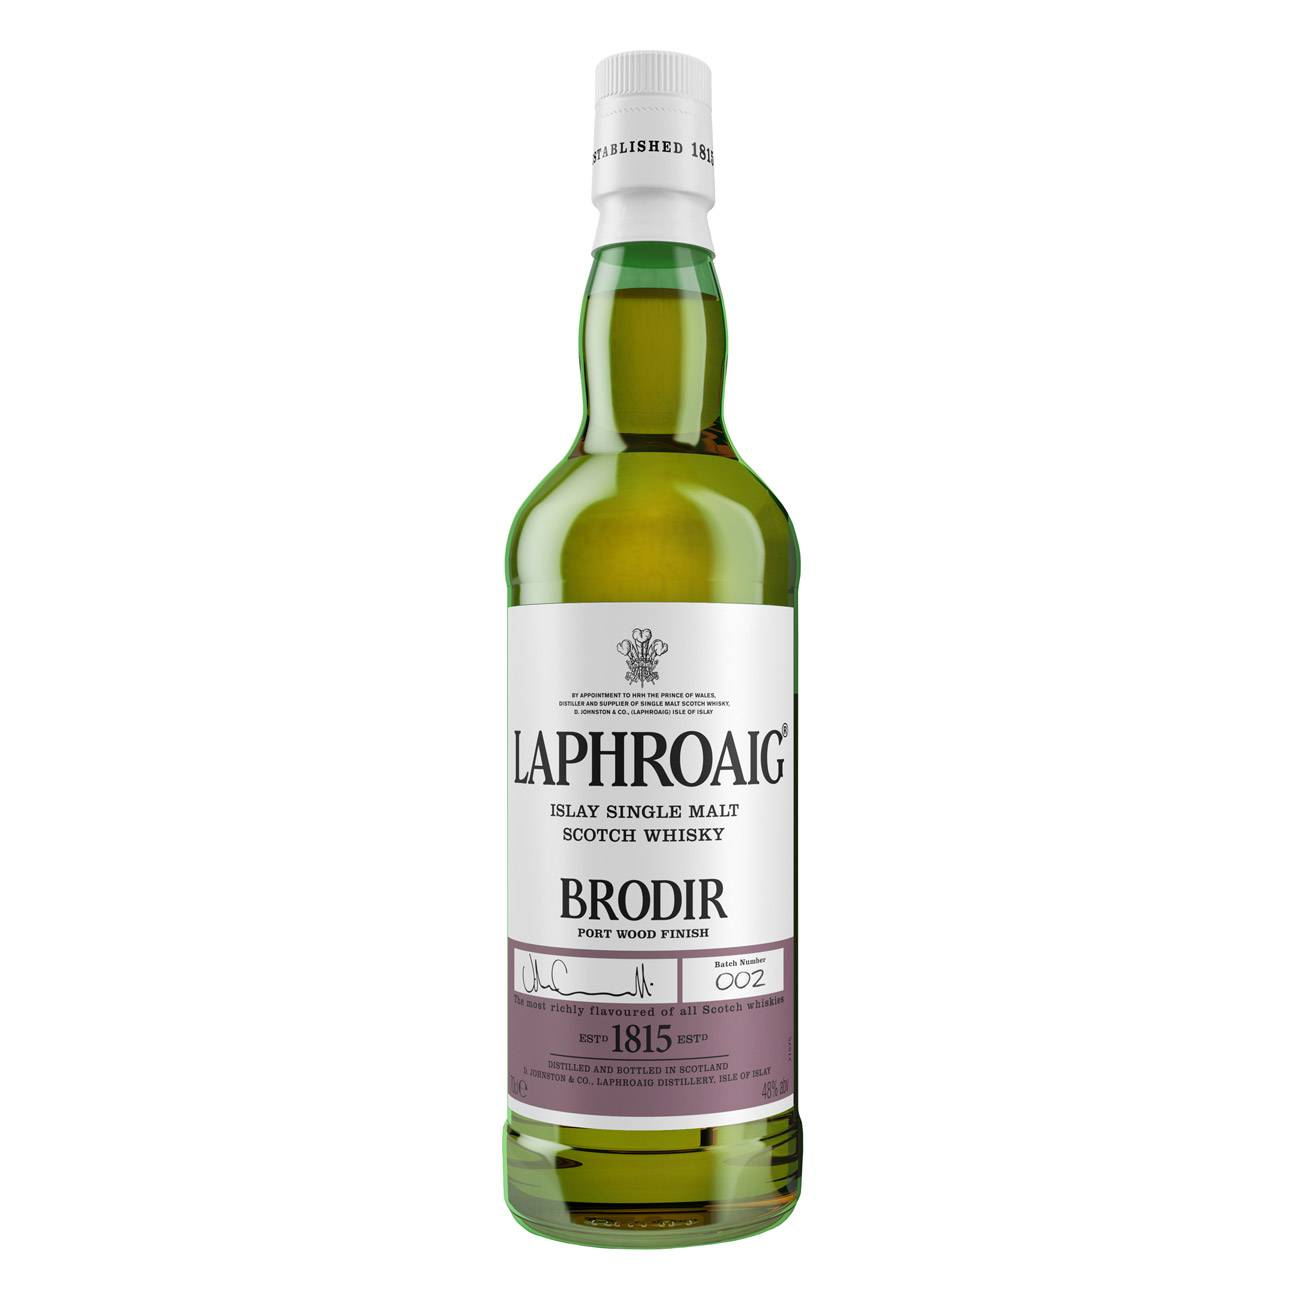 Whisky scotian, BRODIR 700 ML, Laphroaig